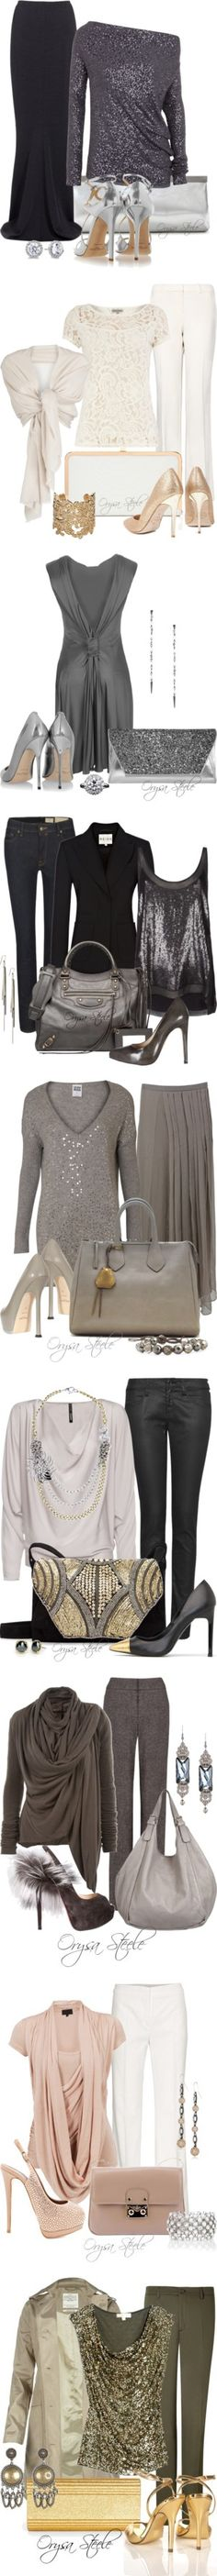 """The Holiday Collection"" by orysa on Polyvore"